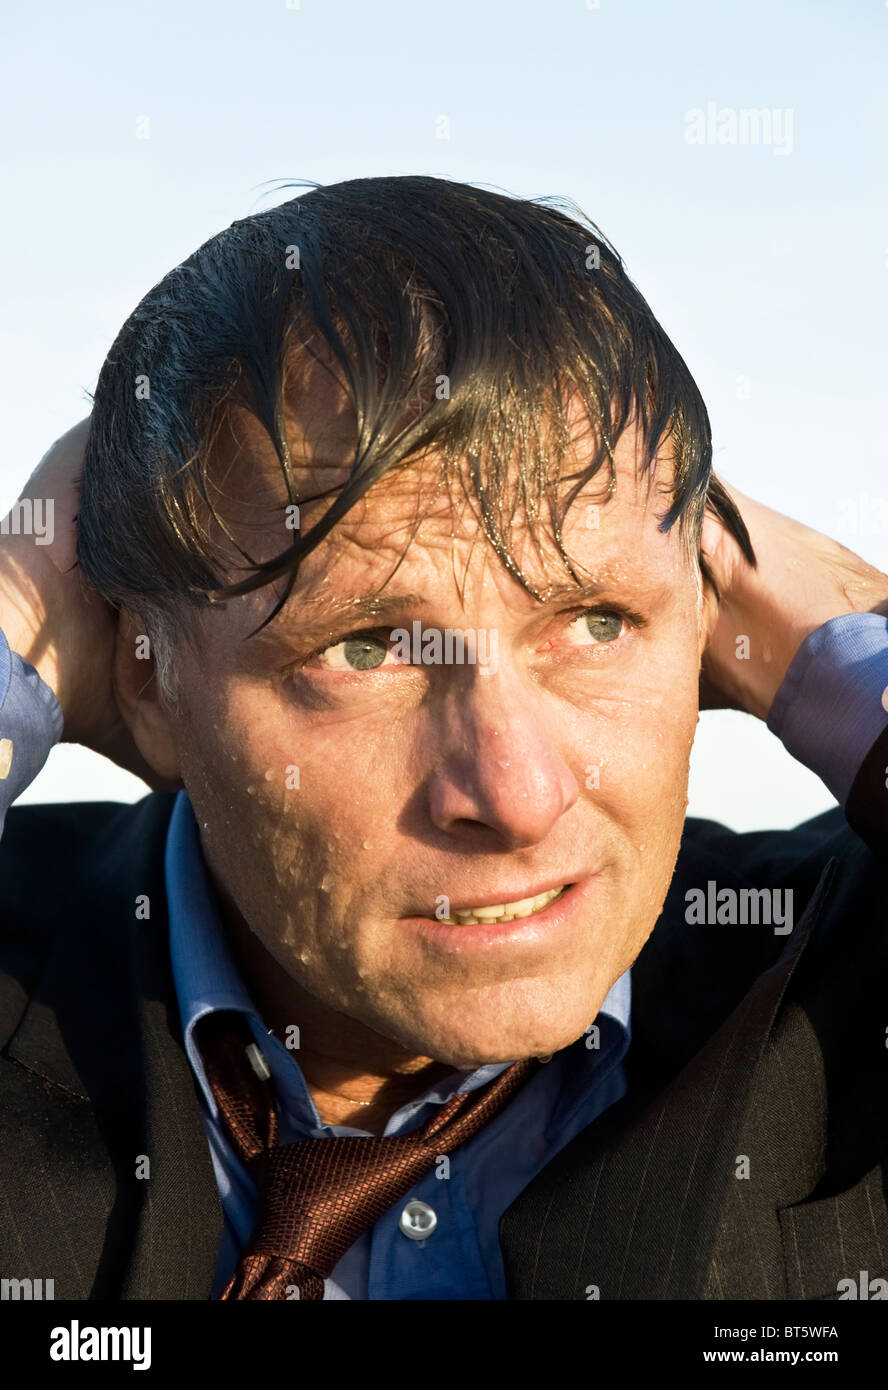 A depressed and anxious looking businessman who is soaking wet. Stock Photo